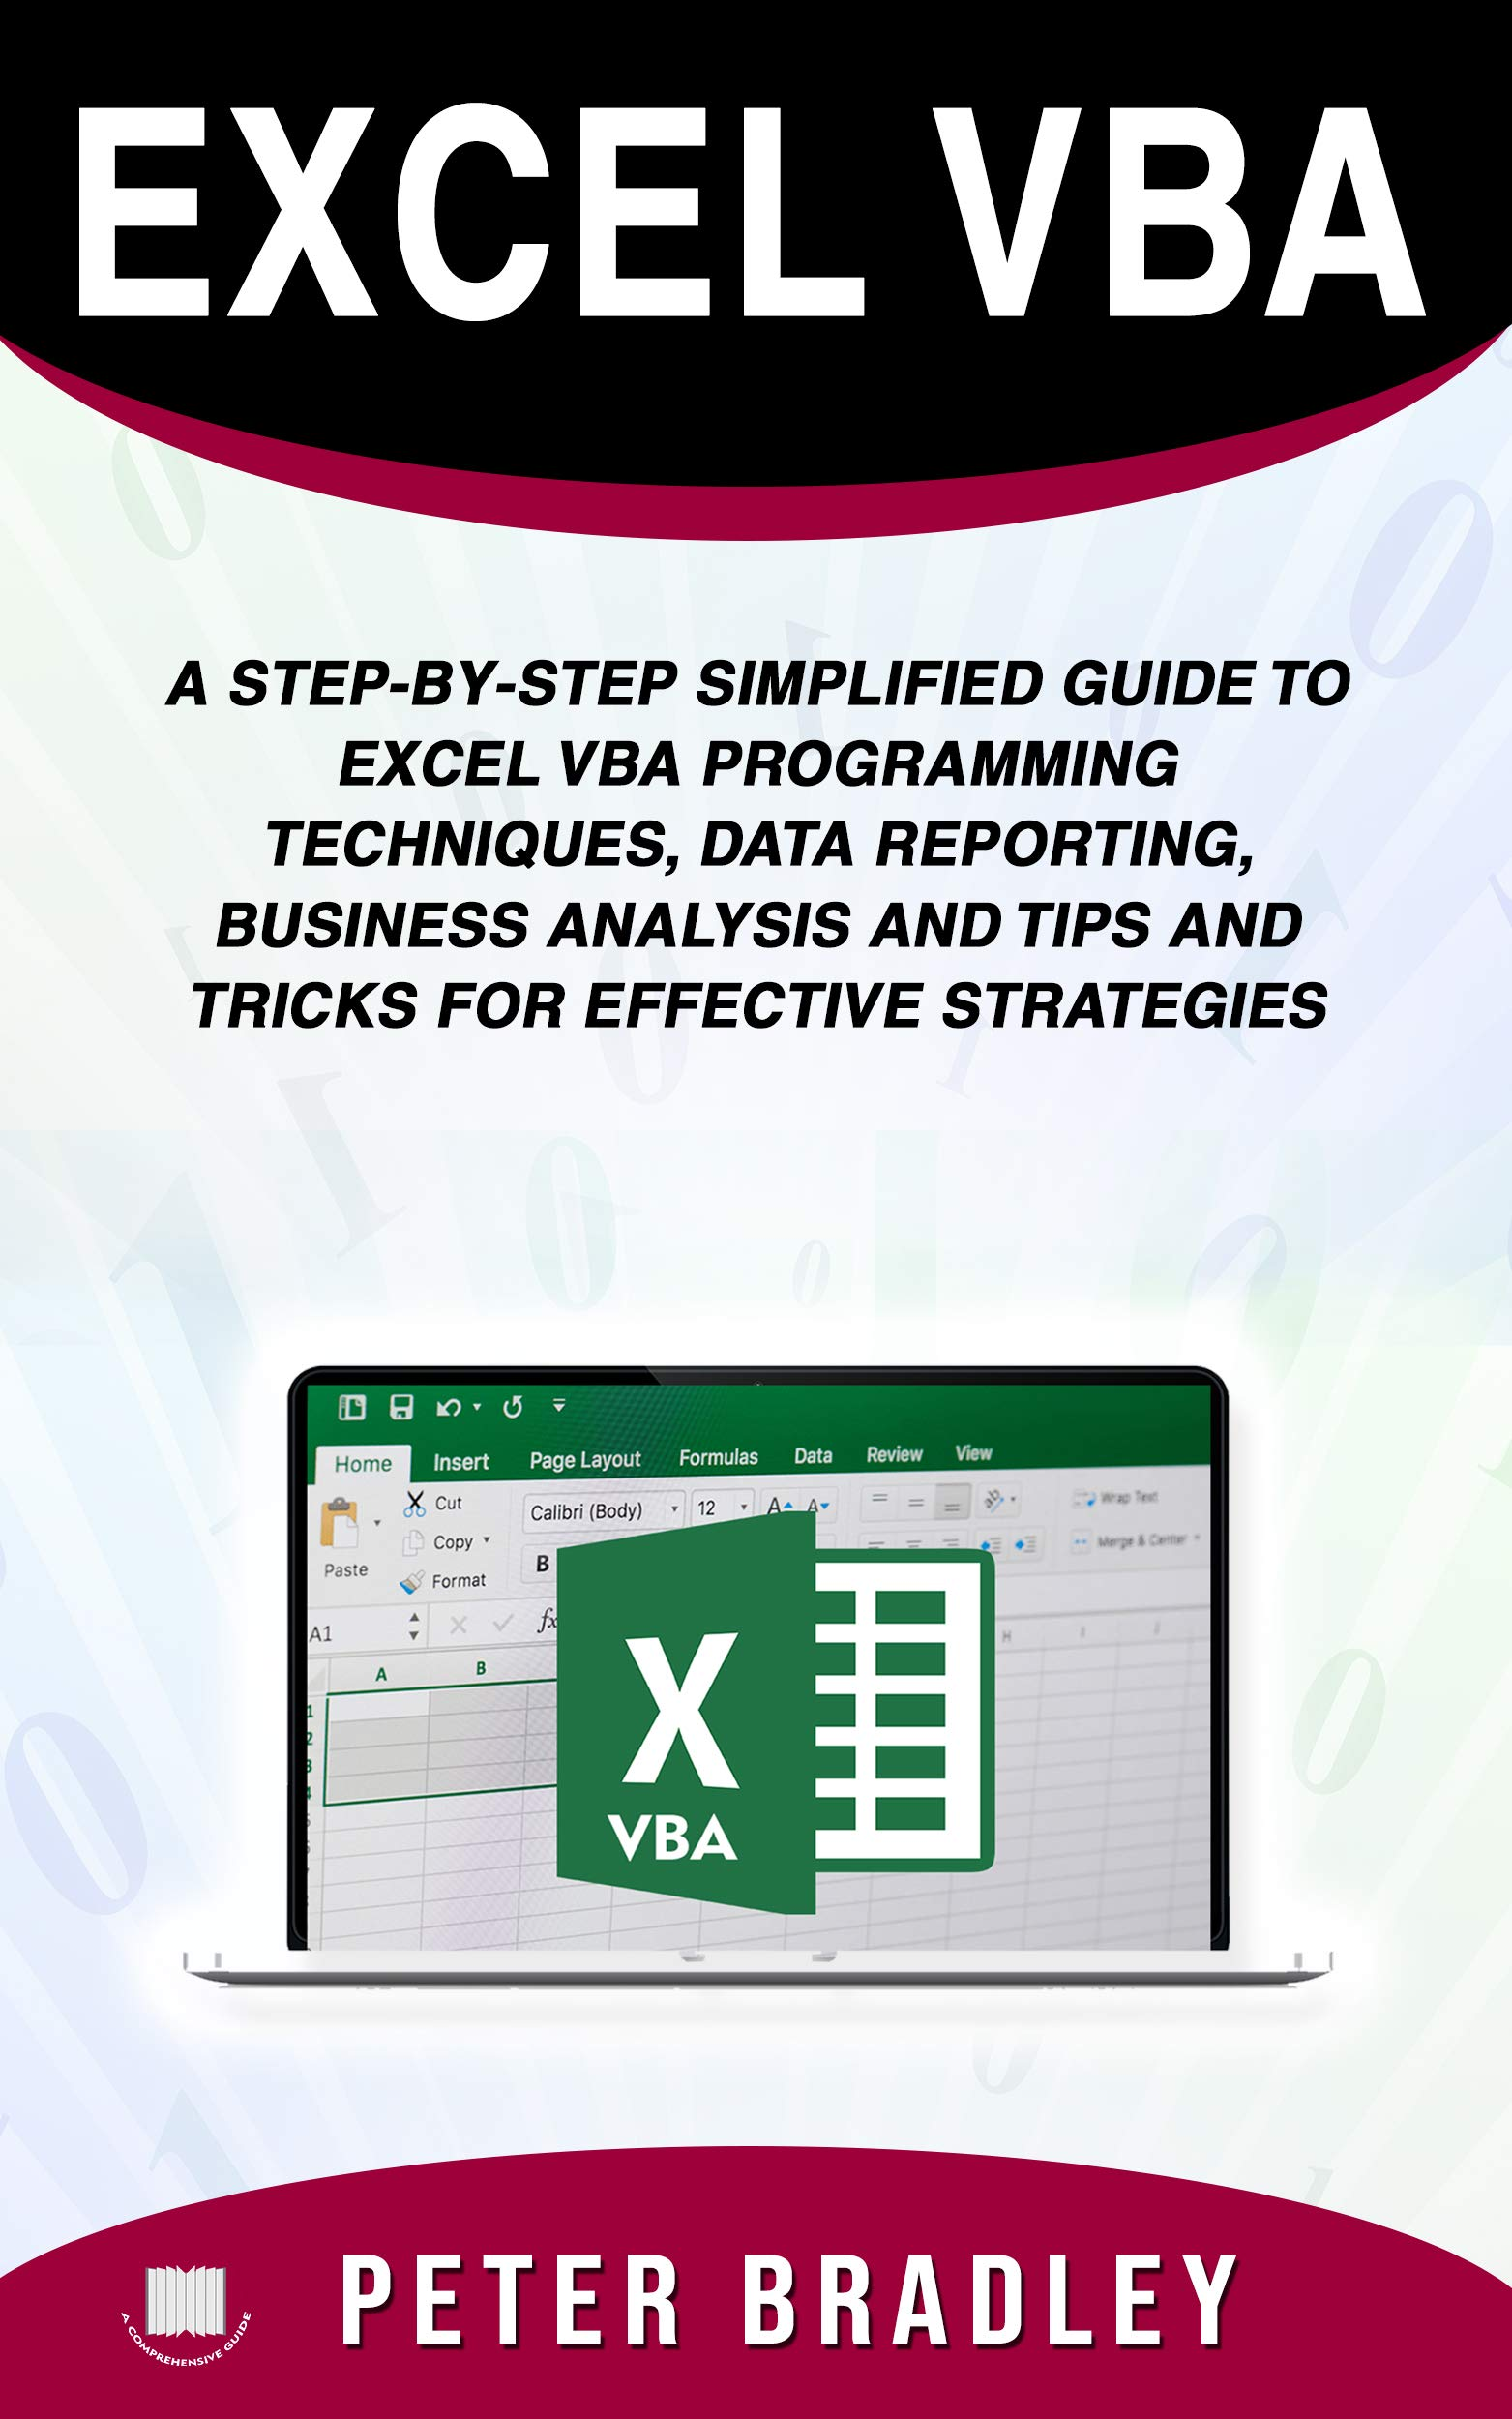 Excel VBA : A Step-by-Step Simplified Guide to Excel VBA Programming Techniques, Data Reporting, Business Analysis and Tips and Tricks for Effective Strategies por Peter Bradley